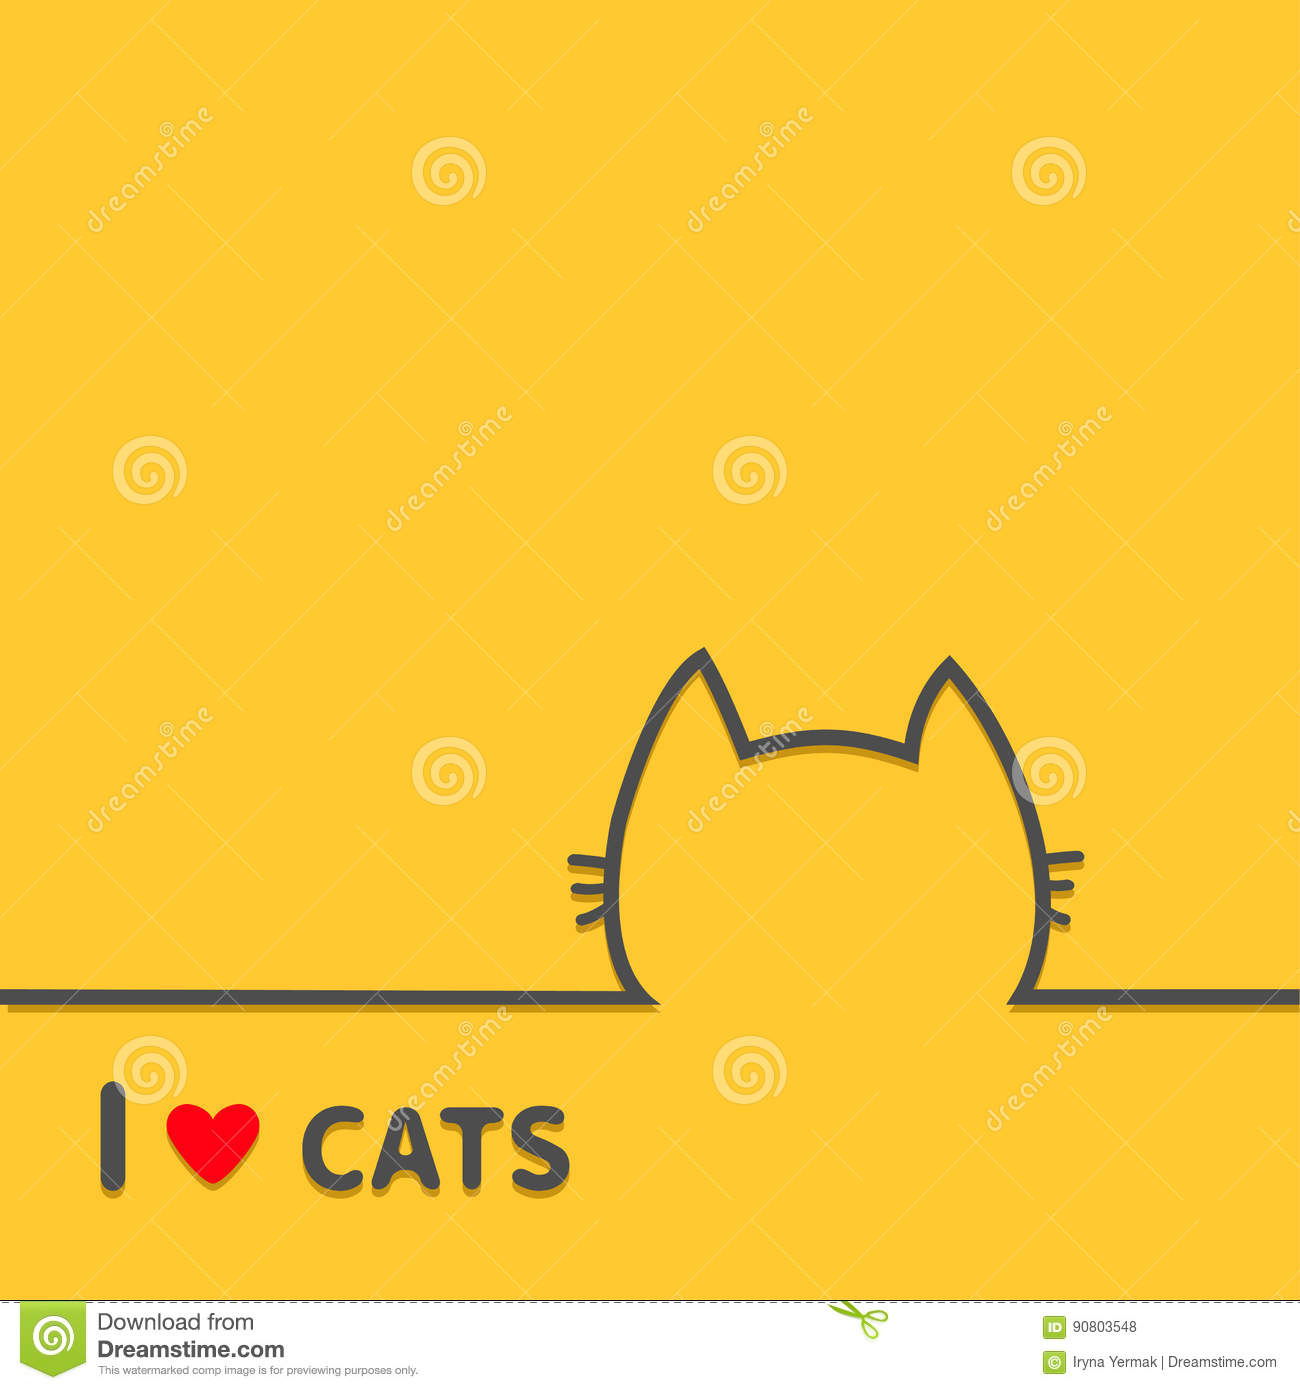 I love cats heart. Black cat head face contour silhouette line icon. Cute cartoon character. Text lettering. Kitten whisker Baby p